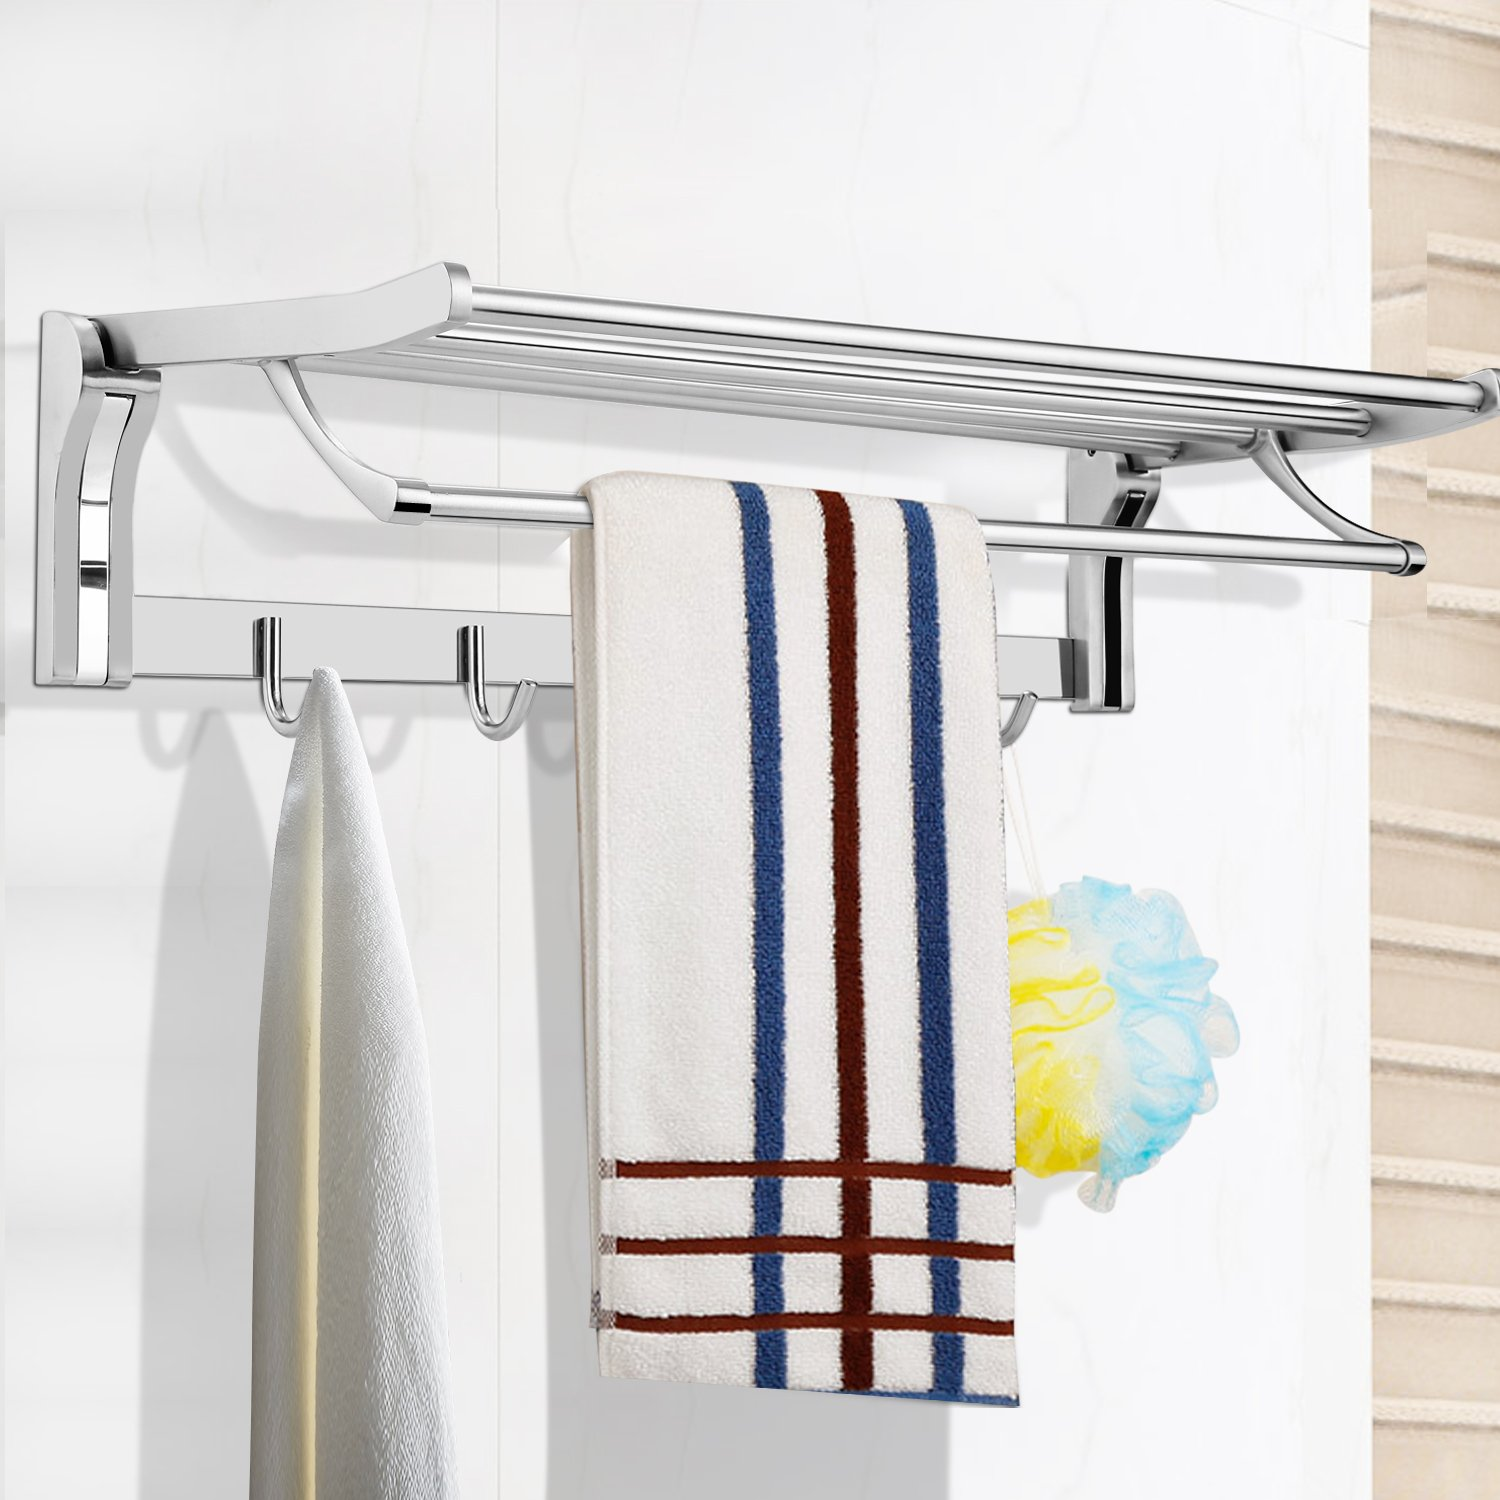 BAZAL 23.6 Inch Bathroom Shelves With Removable Hooks,Stainless Steel Foldable Wall Mounted Double Towel Holder with Towel Bar,Stainless Steel Towel Shelf for Home/Hotel by BAZAL (Image #5)